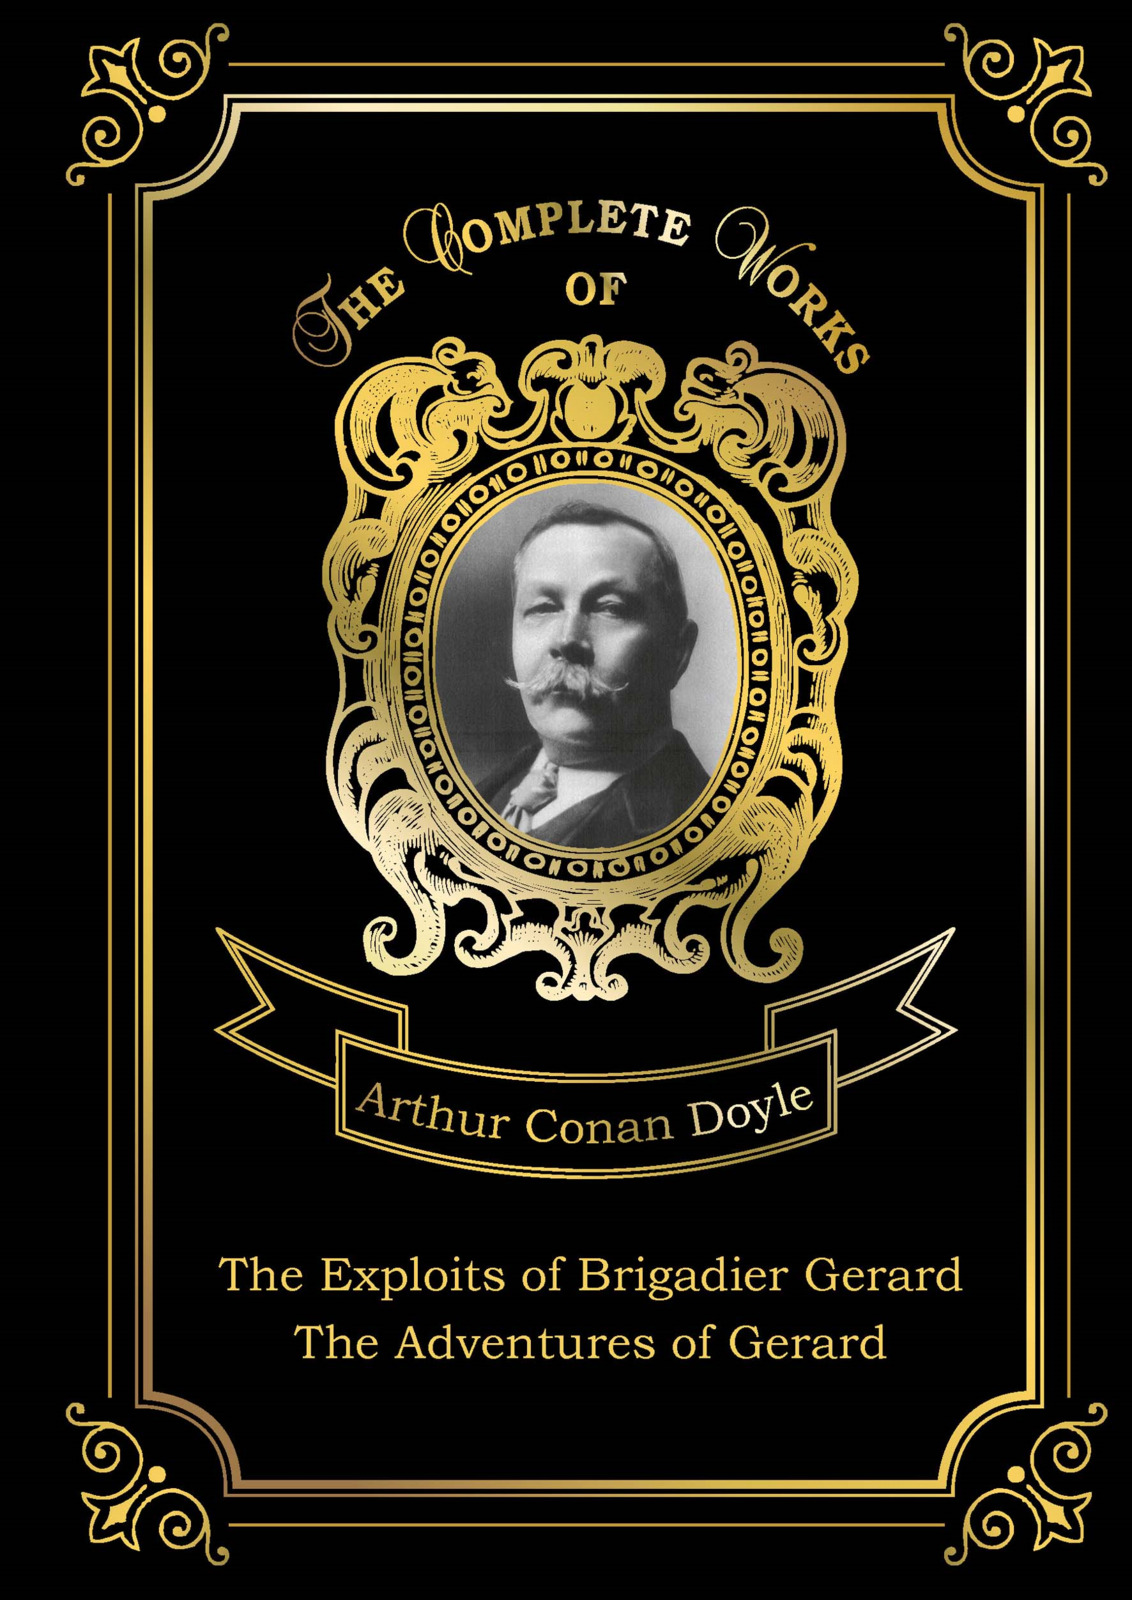 Arthur Conan Doyle The Exploits of Brigadier Gerard: The Adventures of Gerard